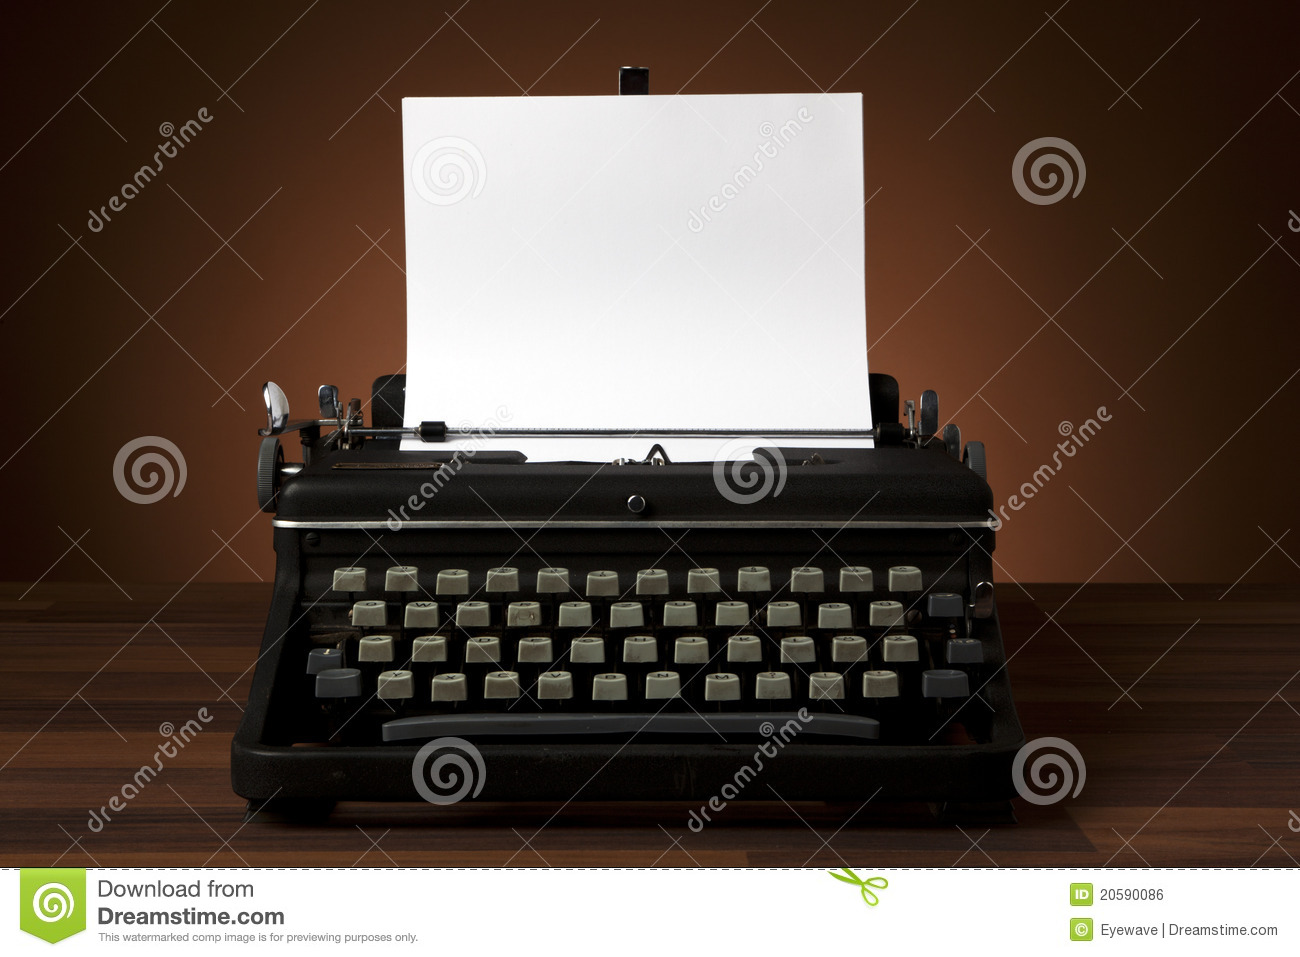 Royalty Free Stock Image Old Typewriter Blank Paper Image20590086 on Latest Old English Writing